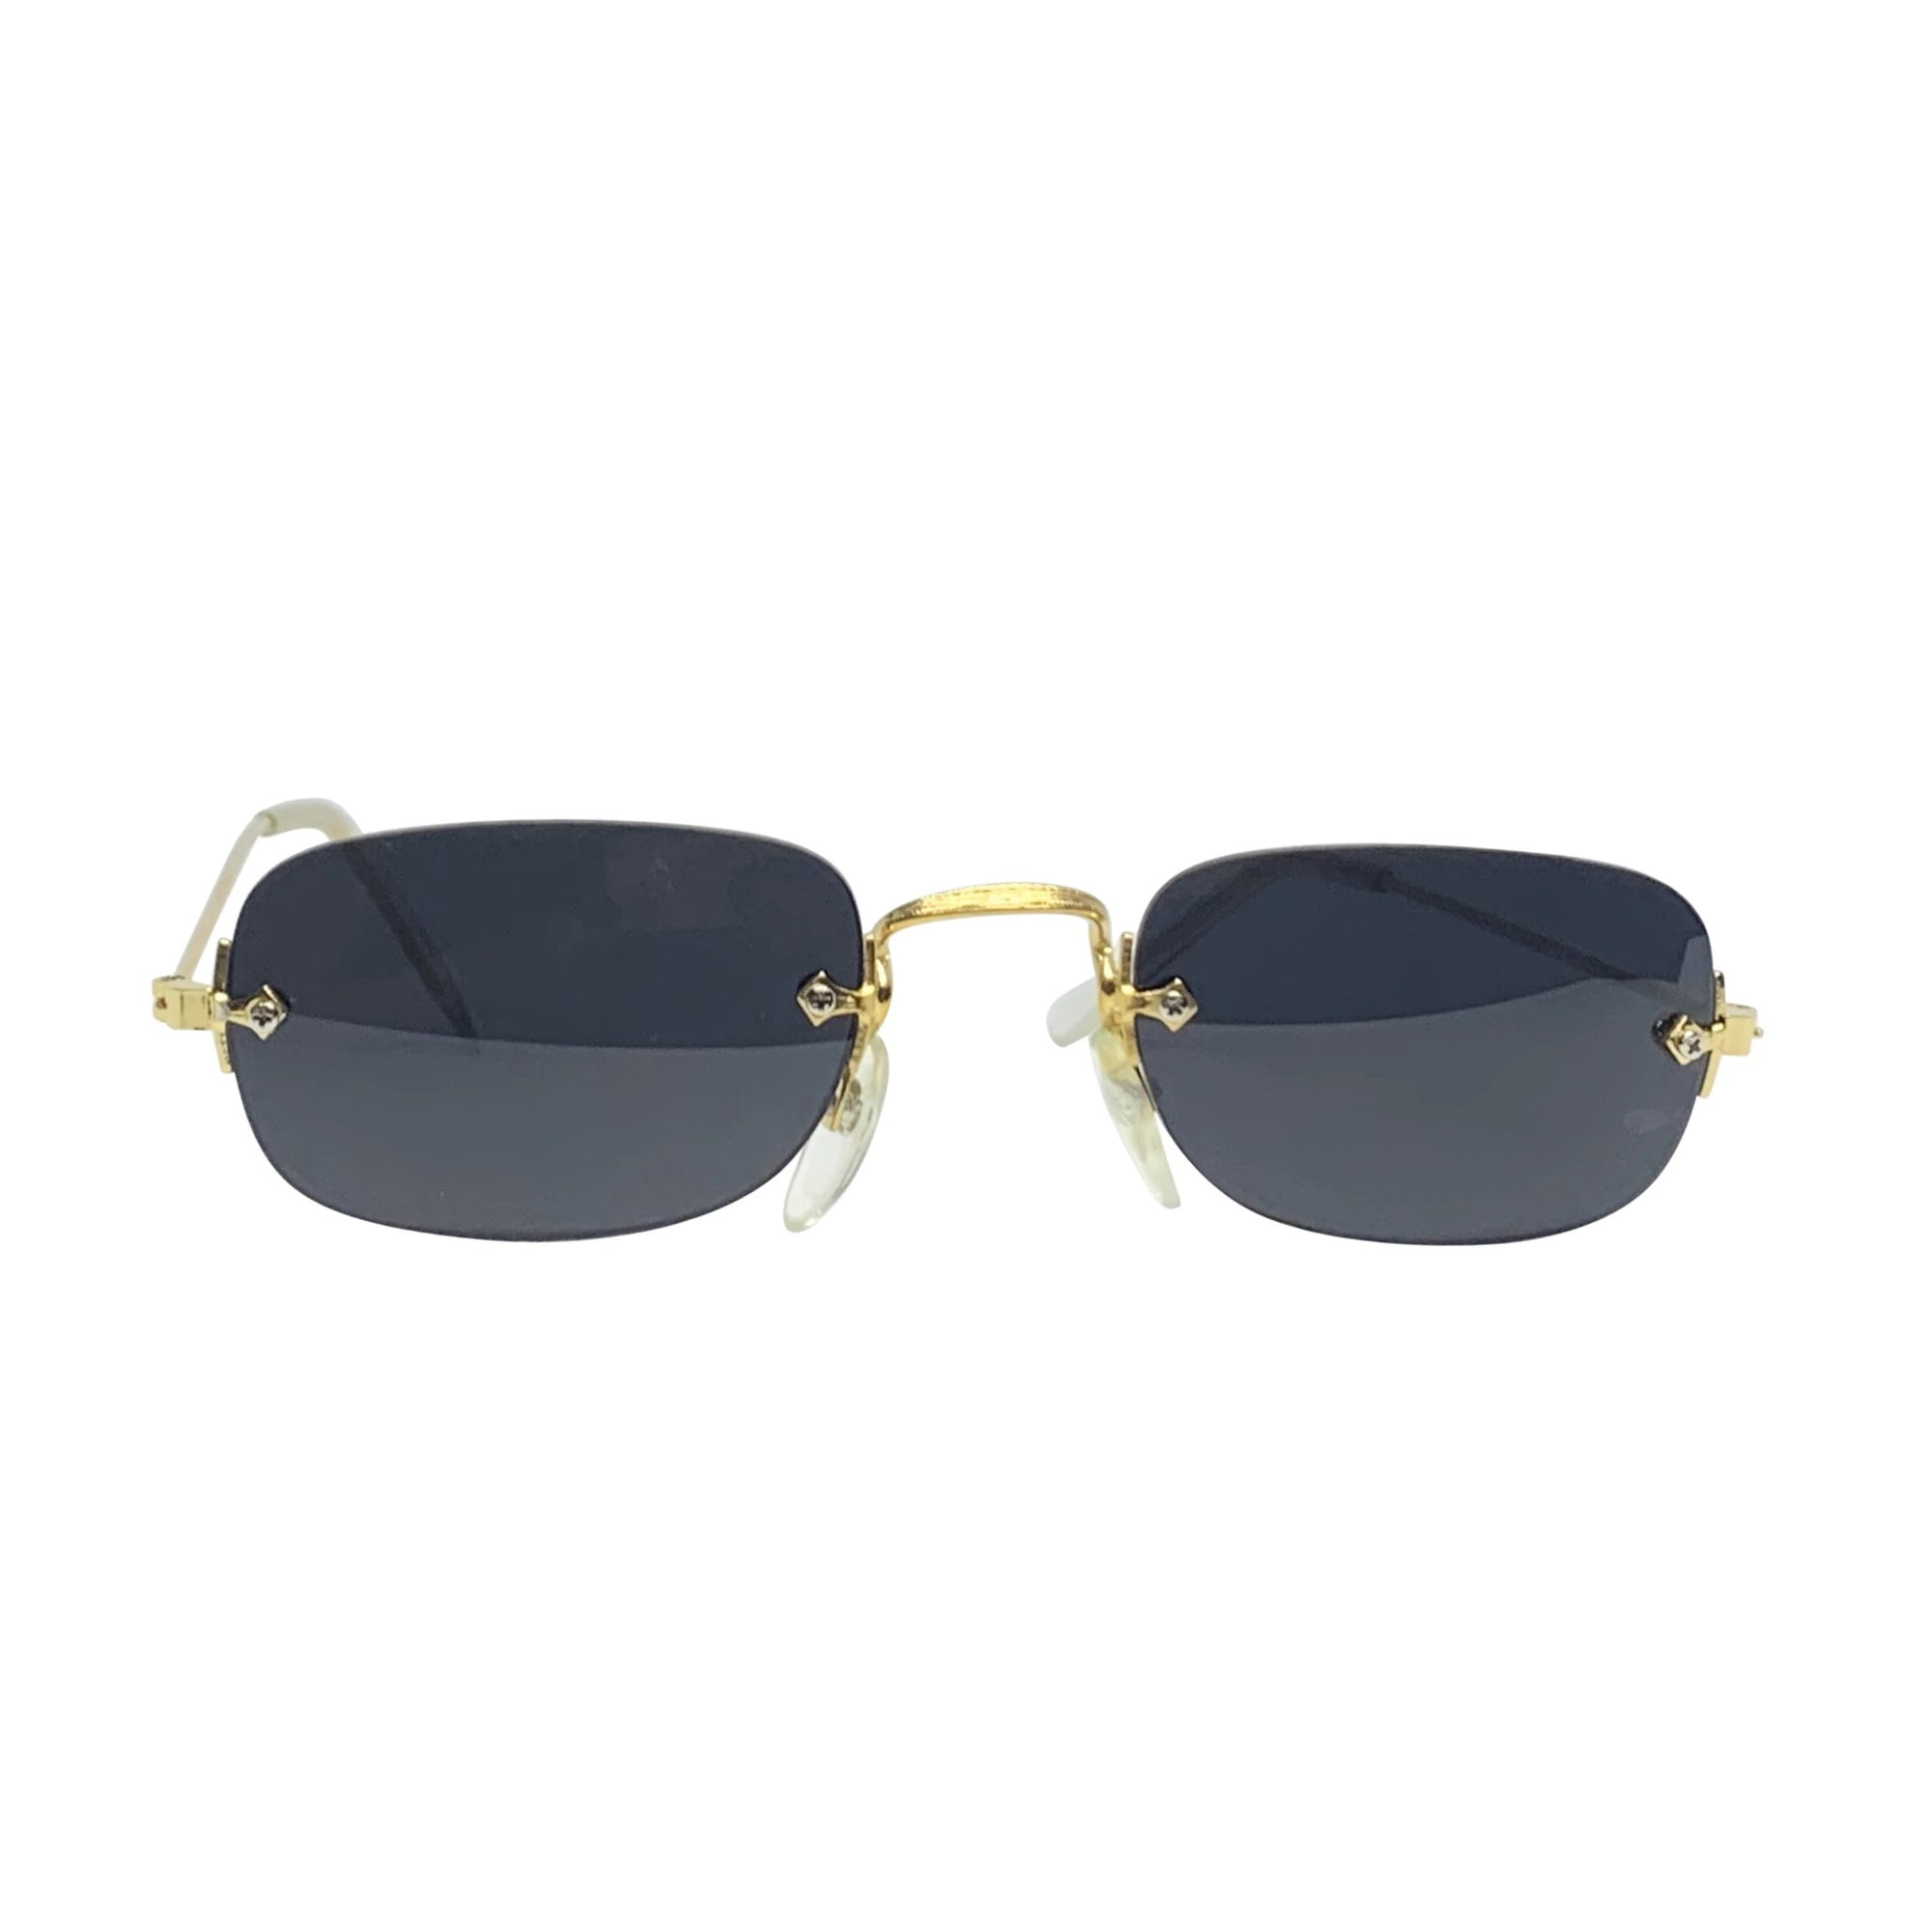 SOUP Black and Gold Rimless Sunglasses